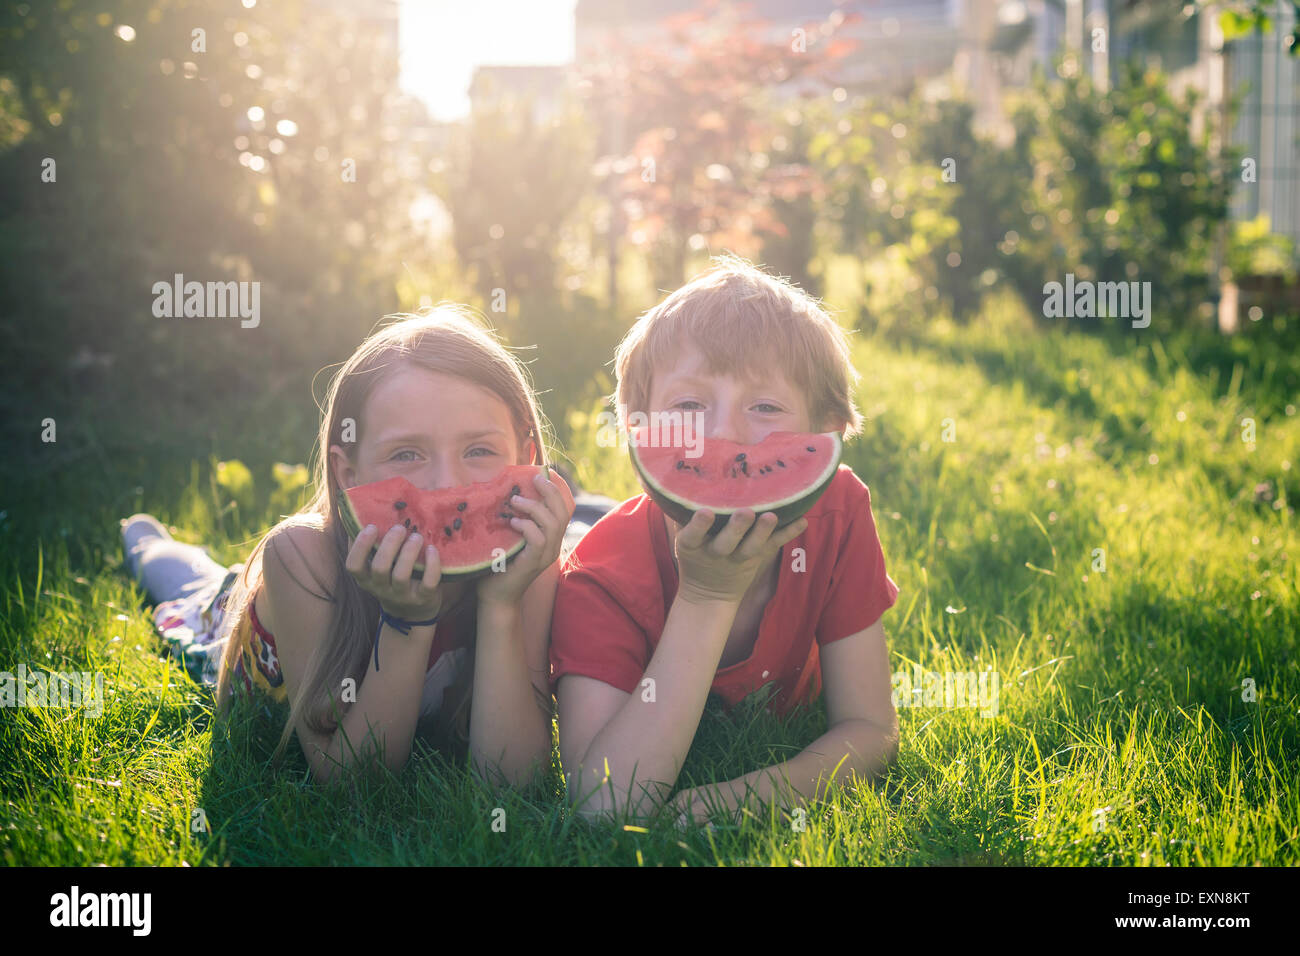 Boy and girl lying on a meadow covering part of her face with slice of watermelon - Stock Image